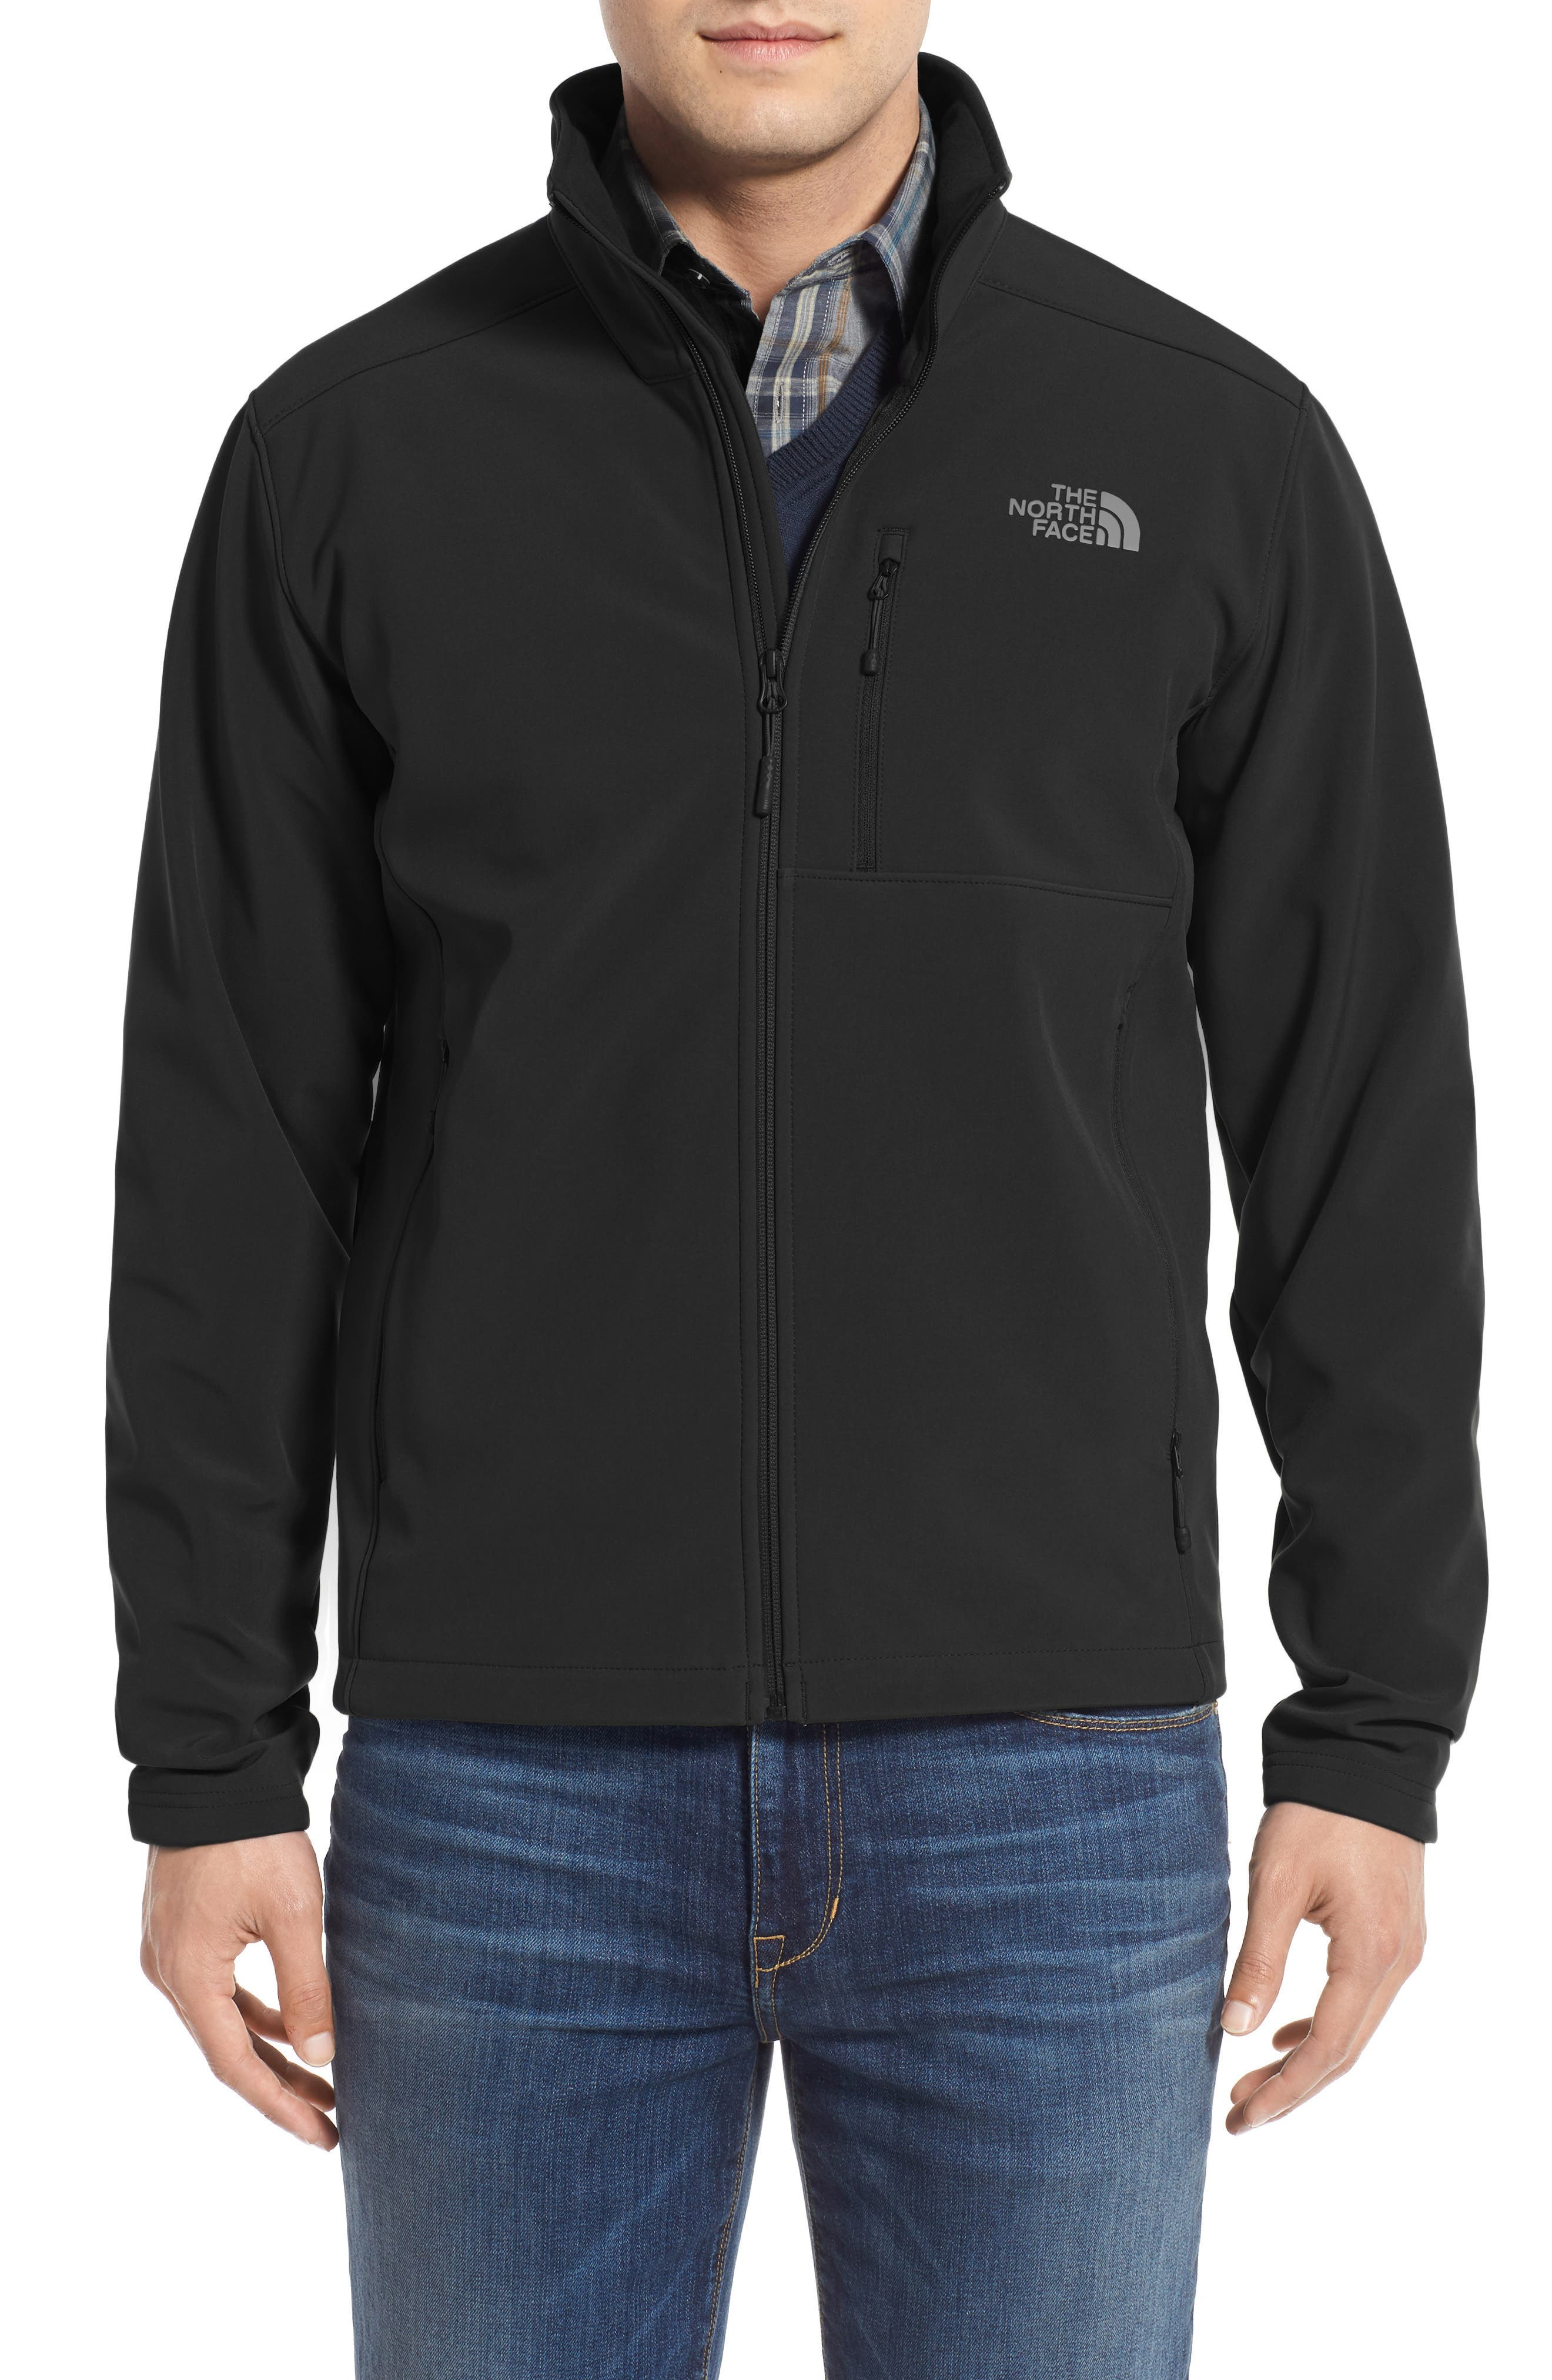 Main Image - The North Face Apex Bionic 2 Water Repllent Jacket (Tall)